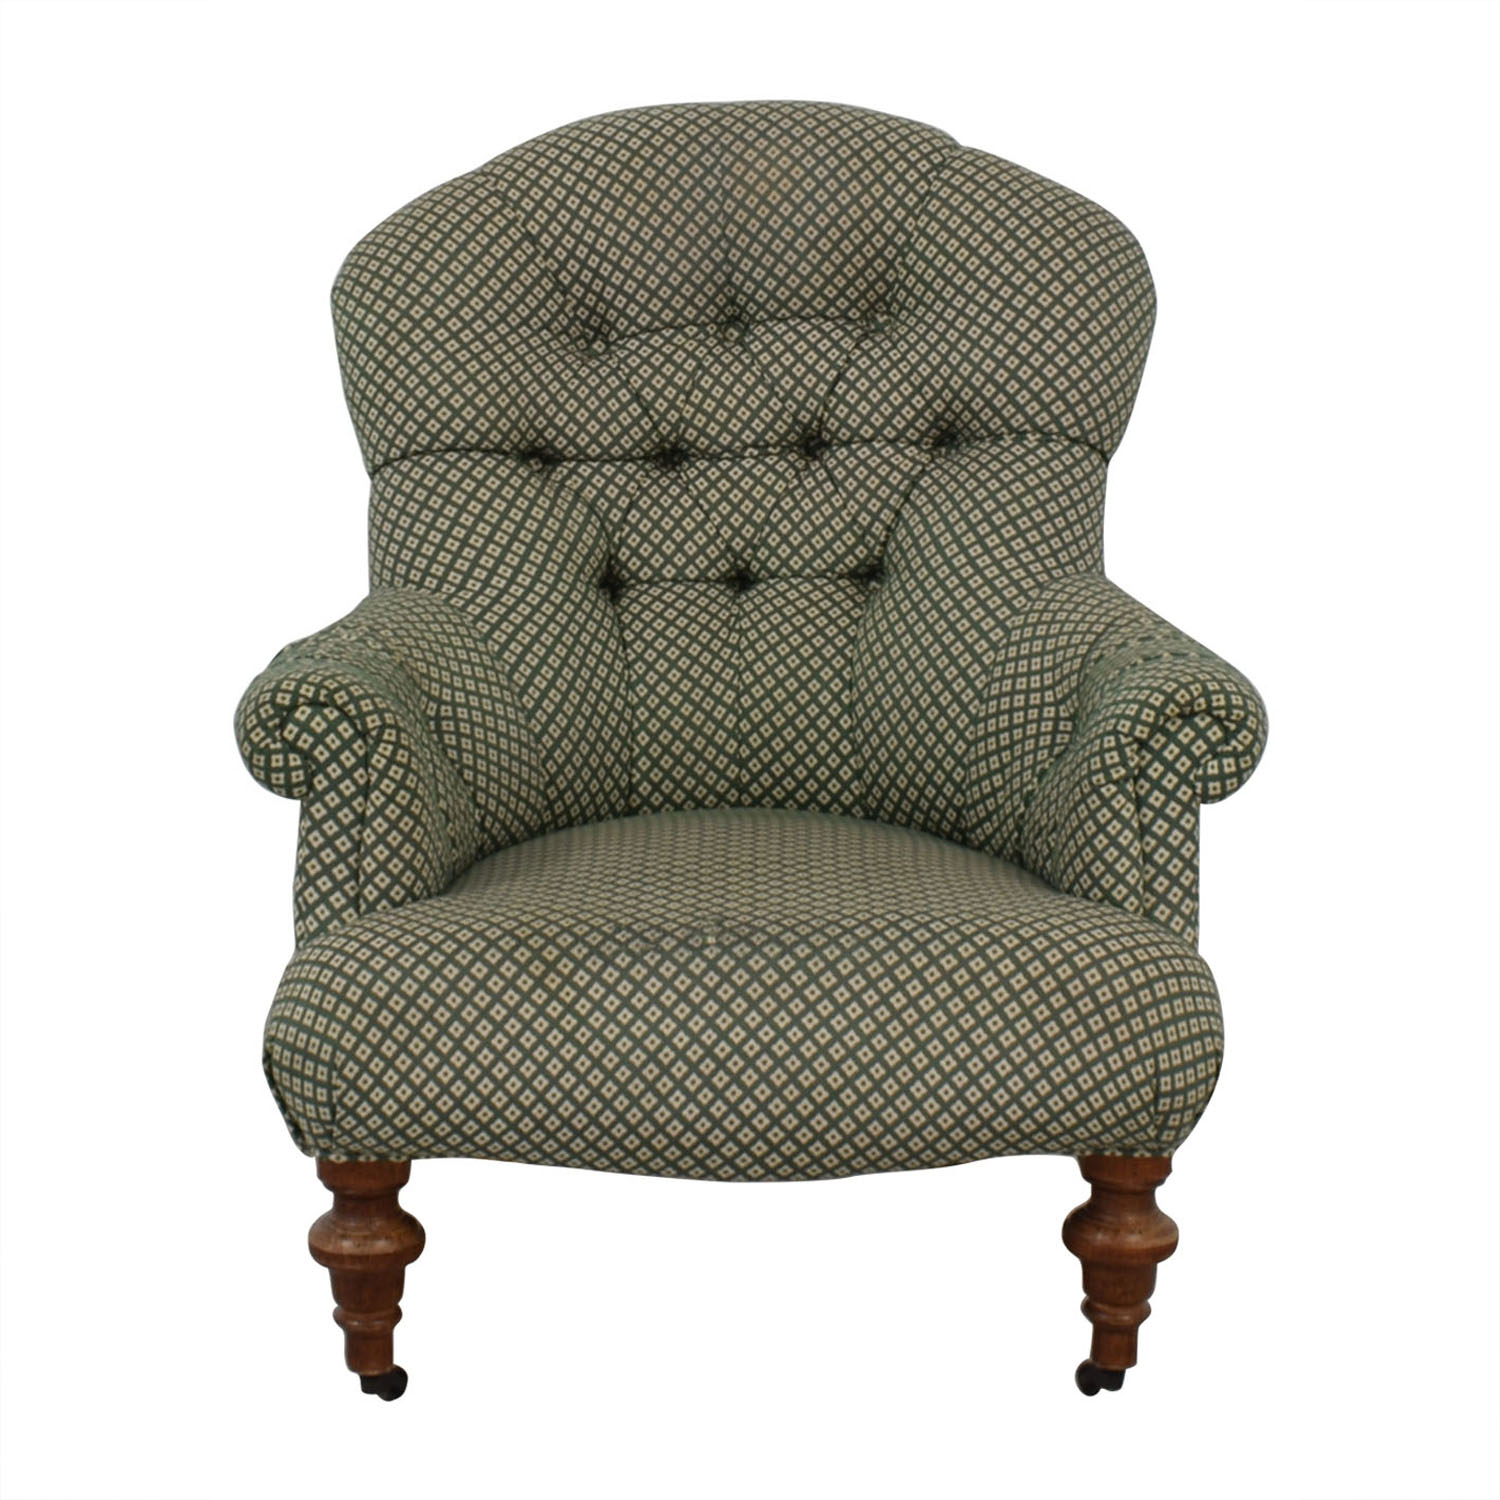 70 Off Green And White Tufted High Back Armchair Chairs